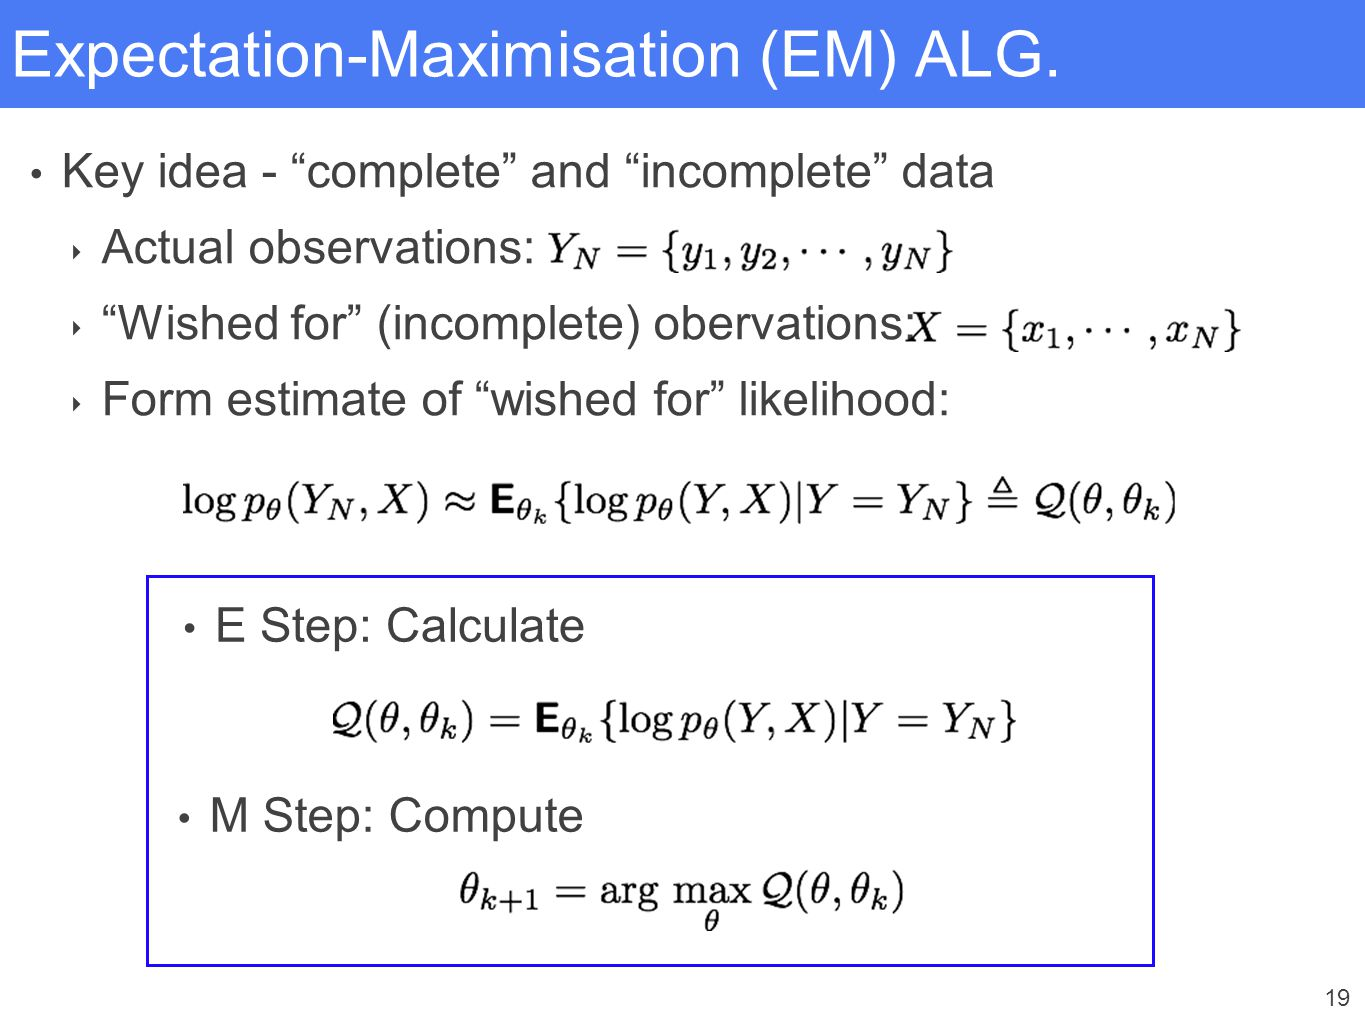 """19 Expectation-Maximisation (EM) ALG. Key idea - """"complete"""" and """"incomplete"""" data ‣ Actual observations: ‣ """"Wished for"""" (incomplete) obervations: ‣ Fo"""